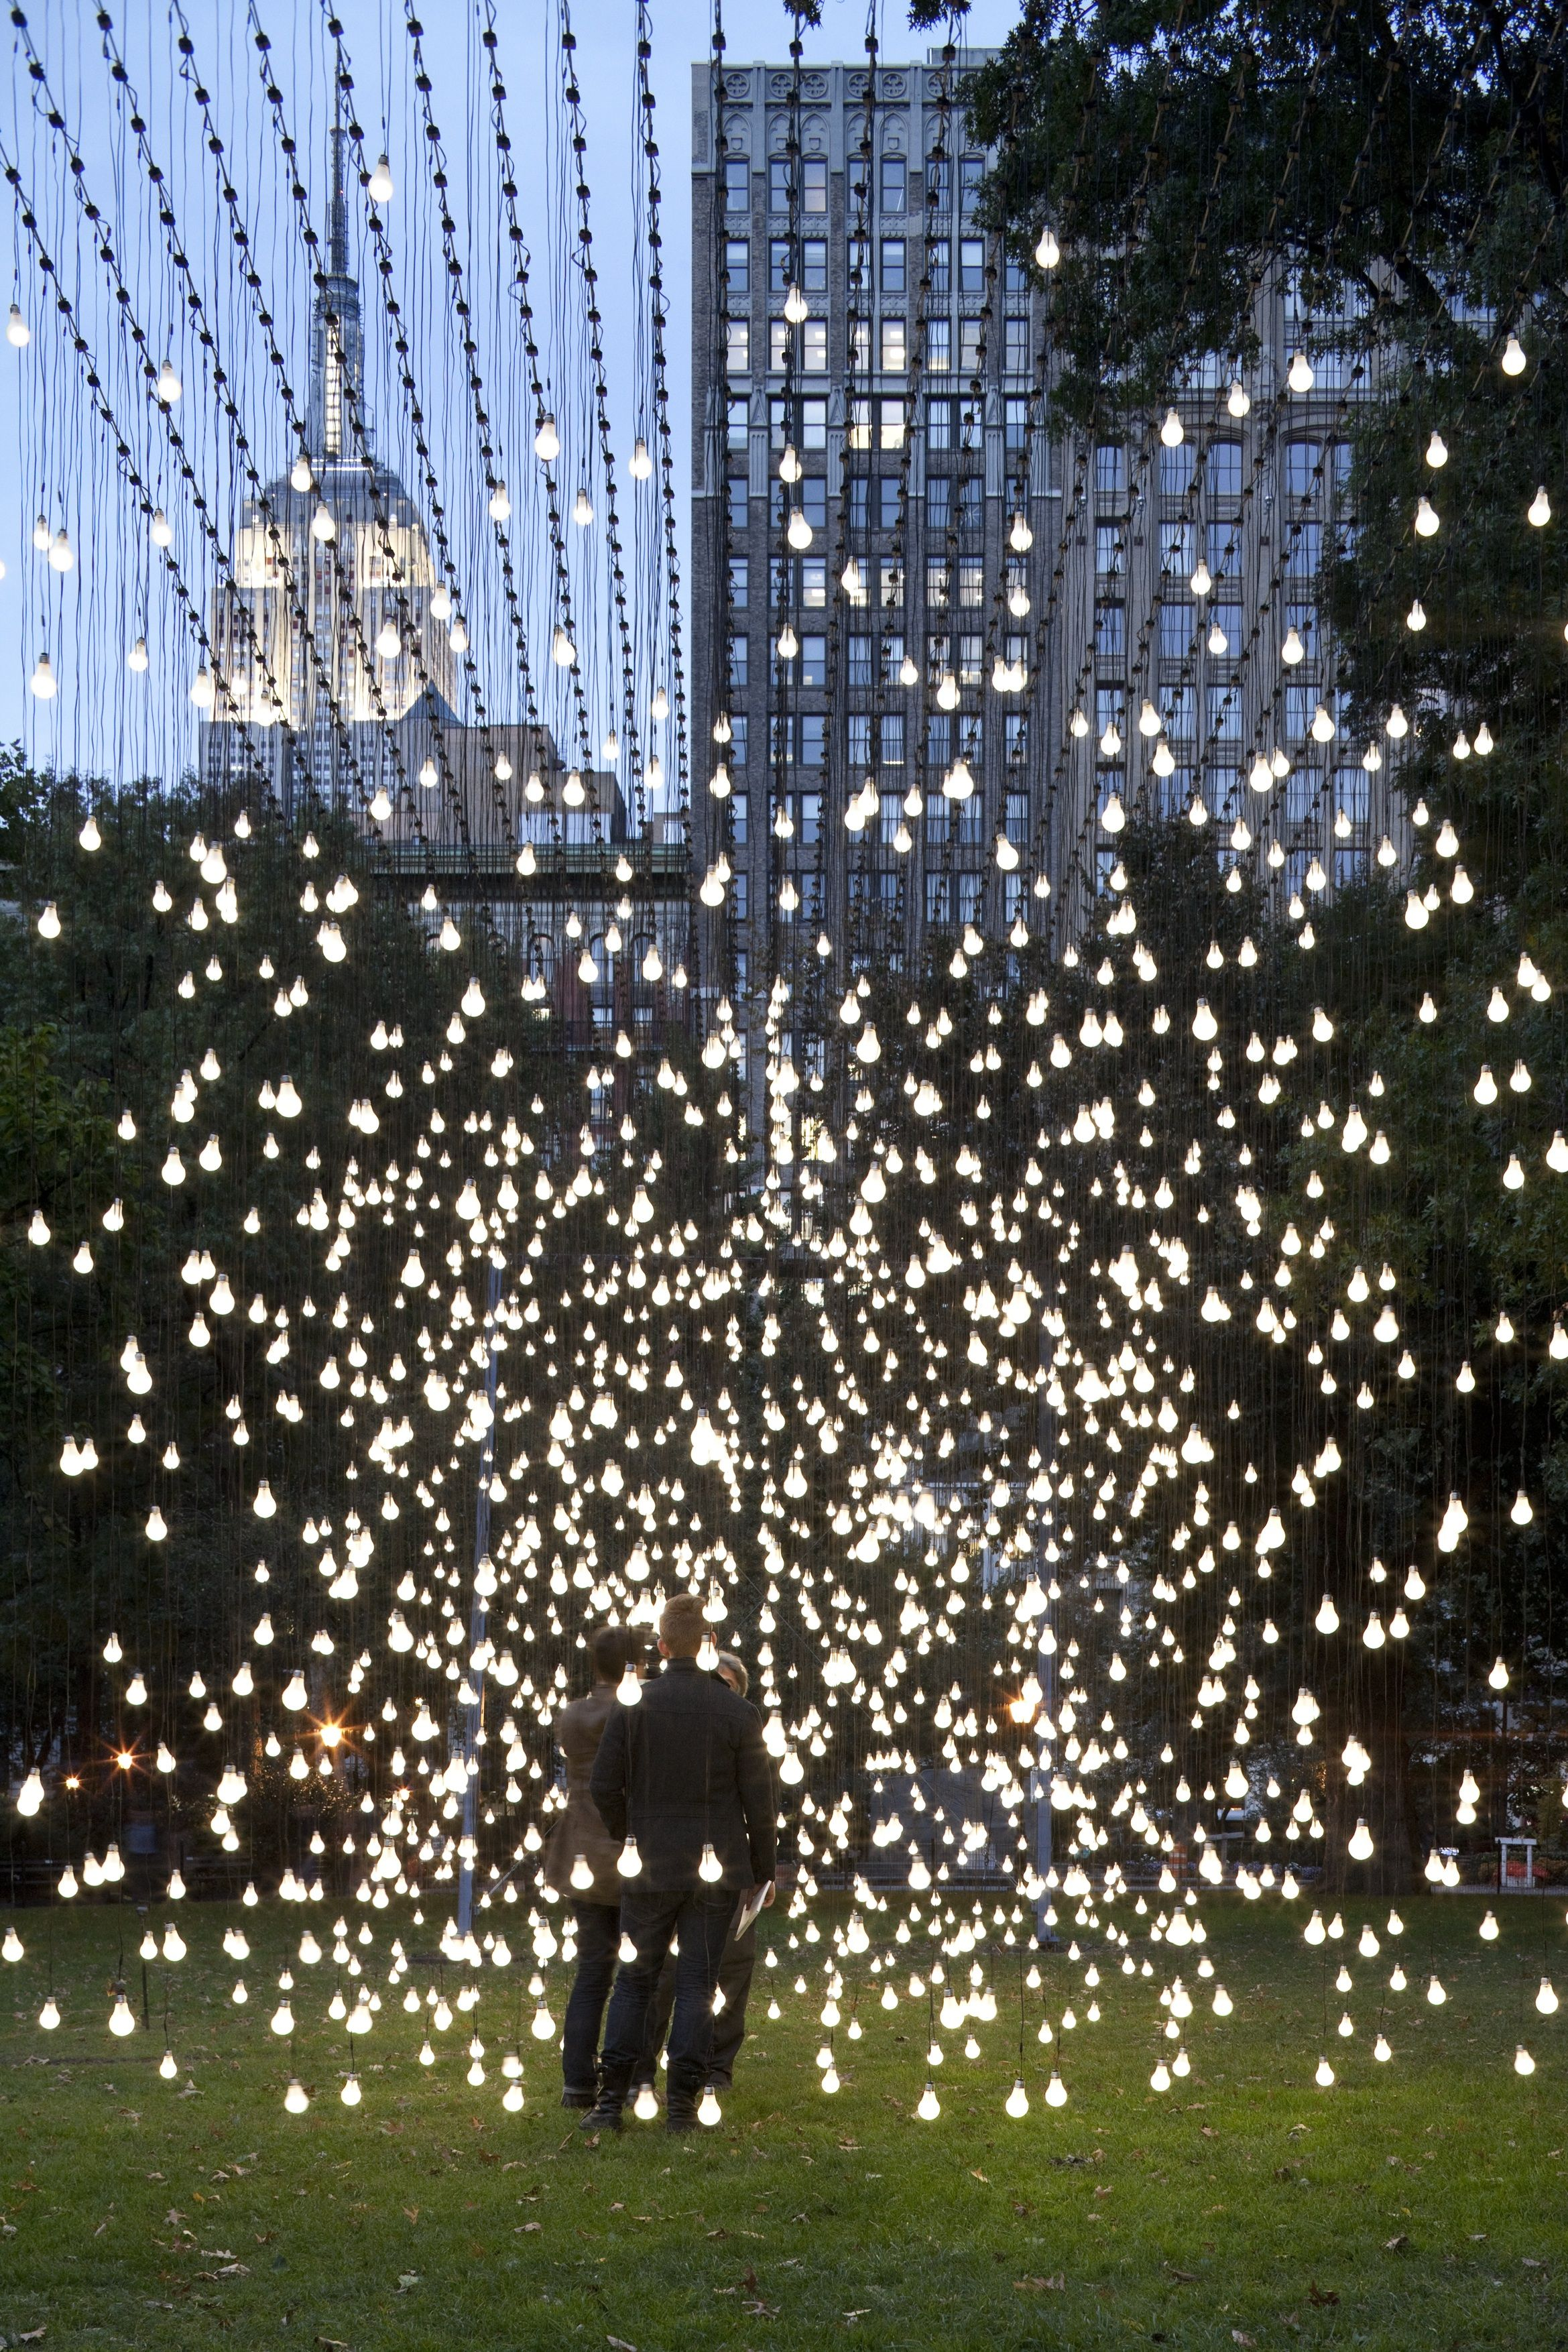 Madison square park events